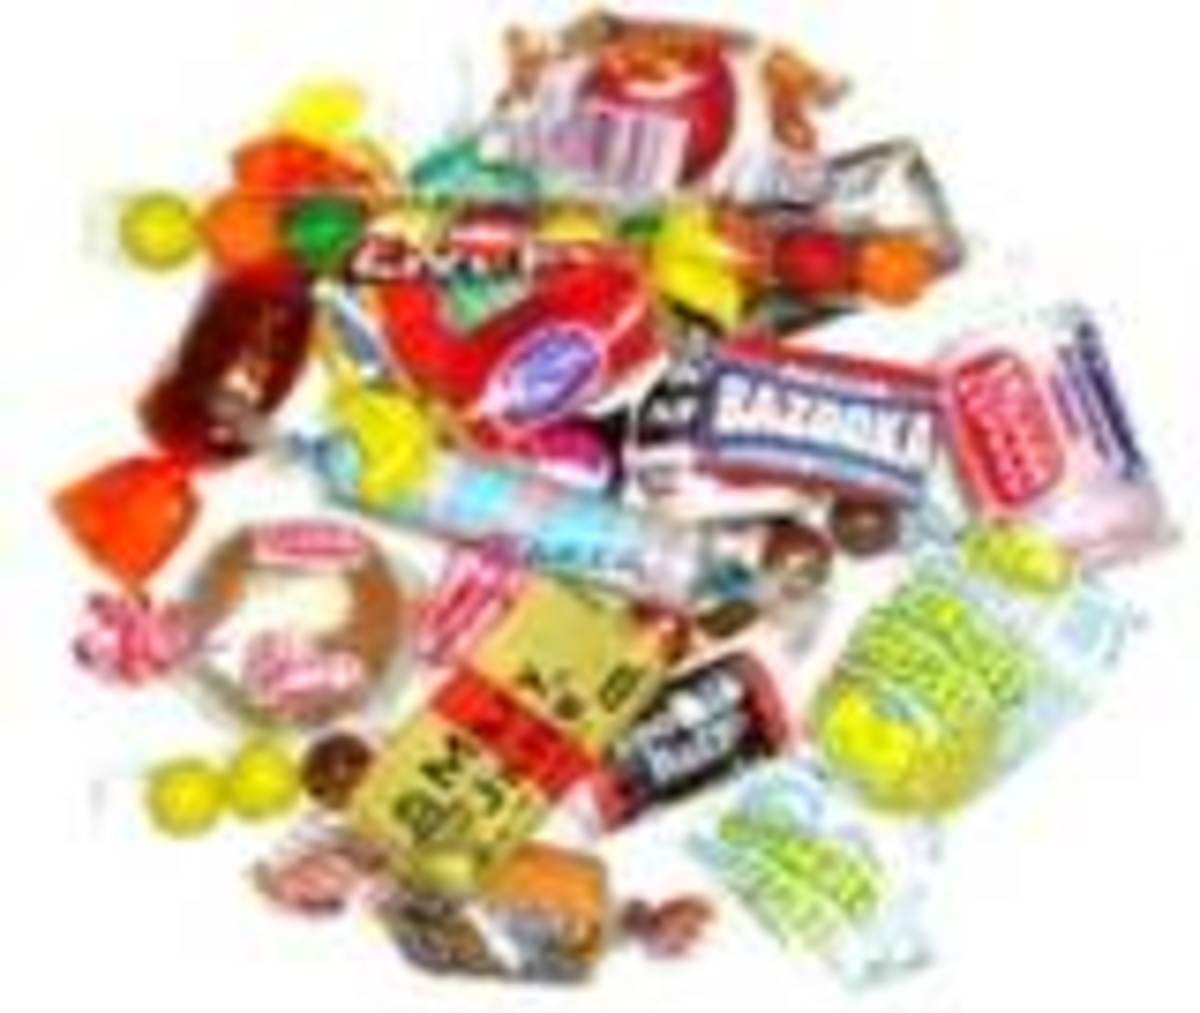 When I was a little kid I used to dream about Penny Candy